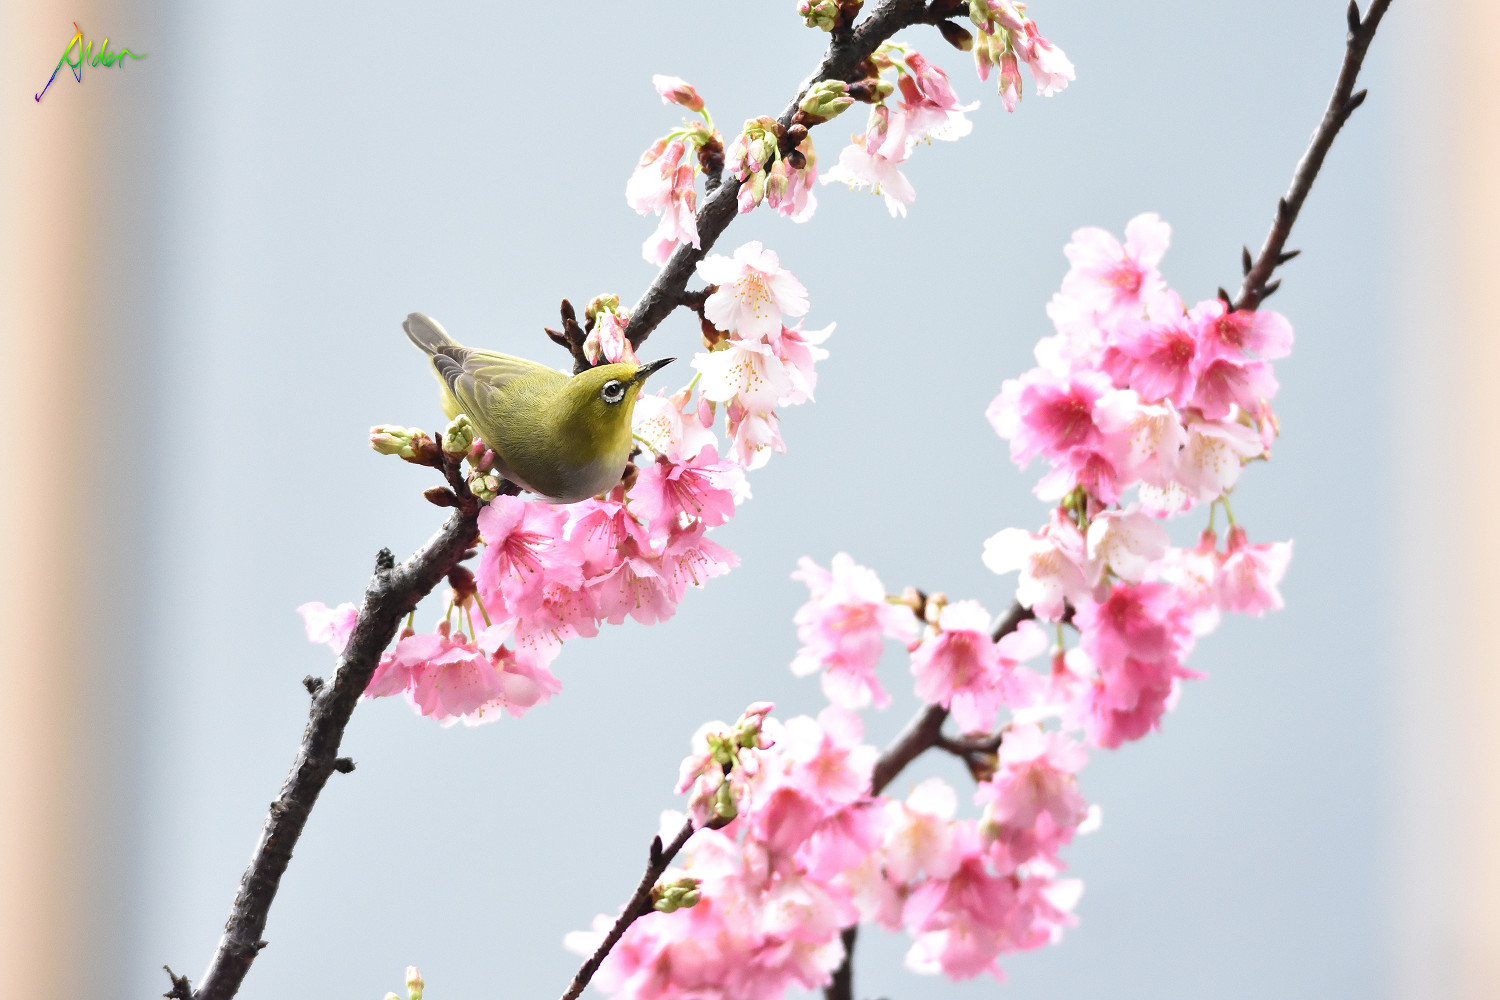 Sakura_White-eye_8015